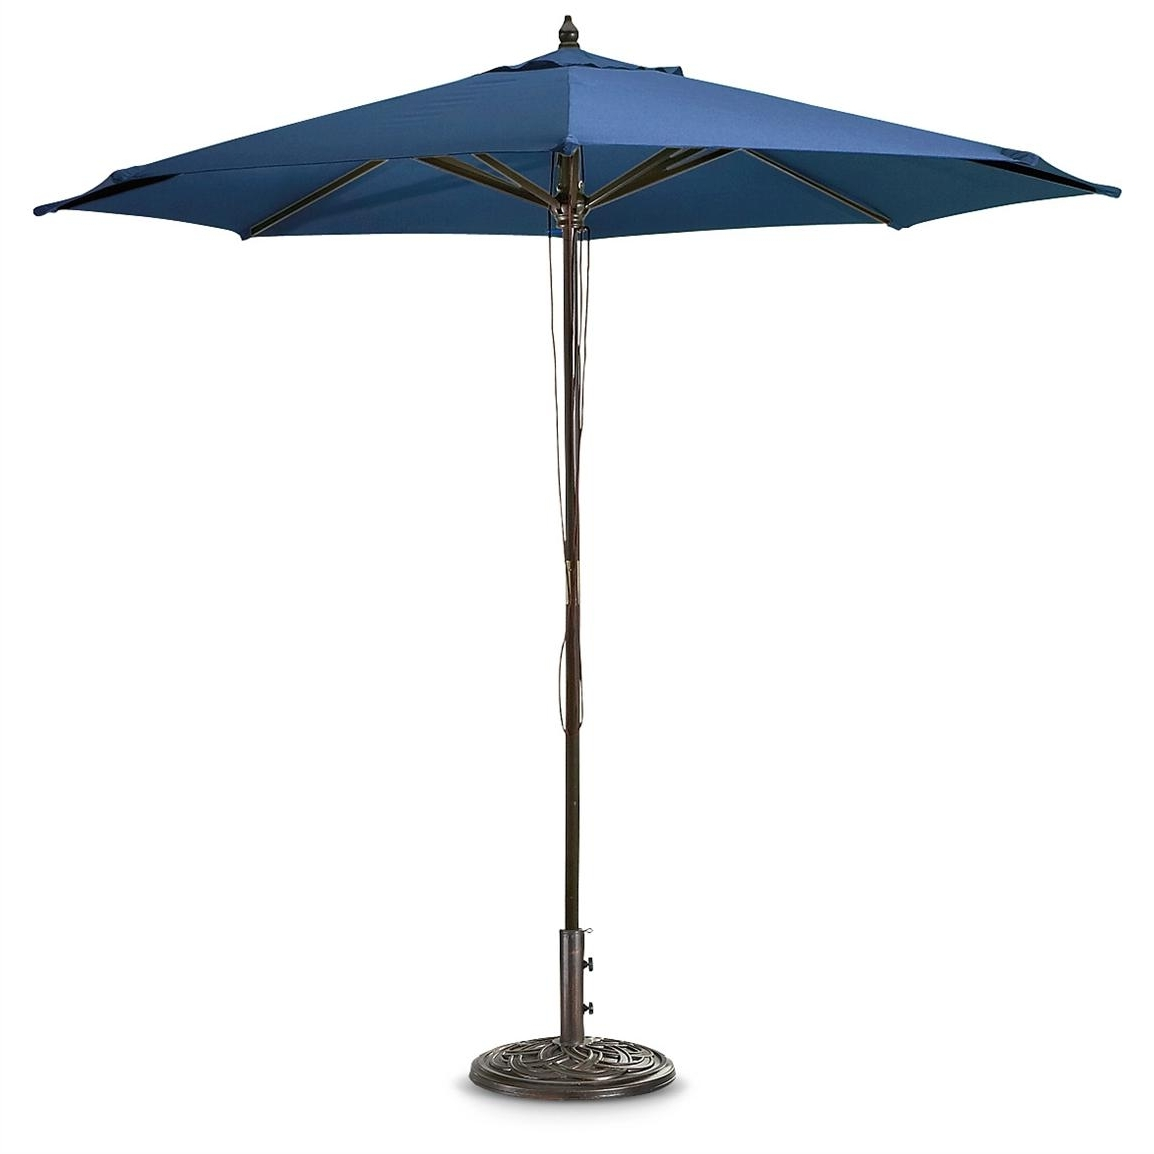 Grey Patio Umbrellas Within Newest Castlecreek 9' Market Patio Umbrella – 234561, Patio Umbrellas At (View 8 of 20)